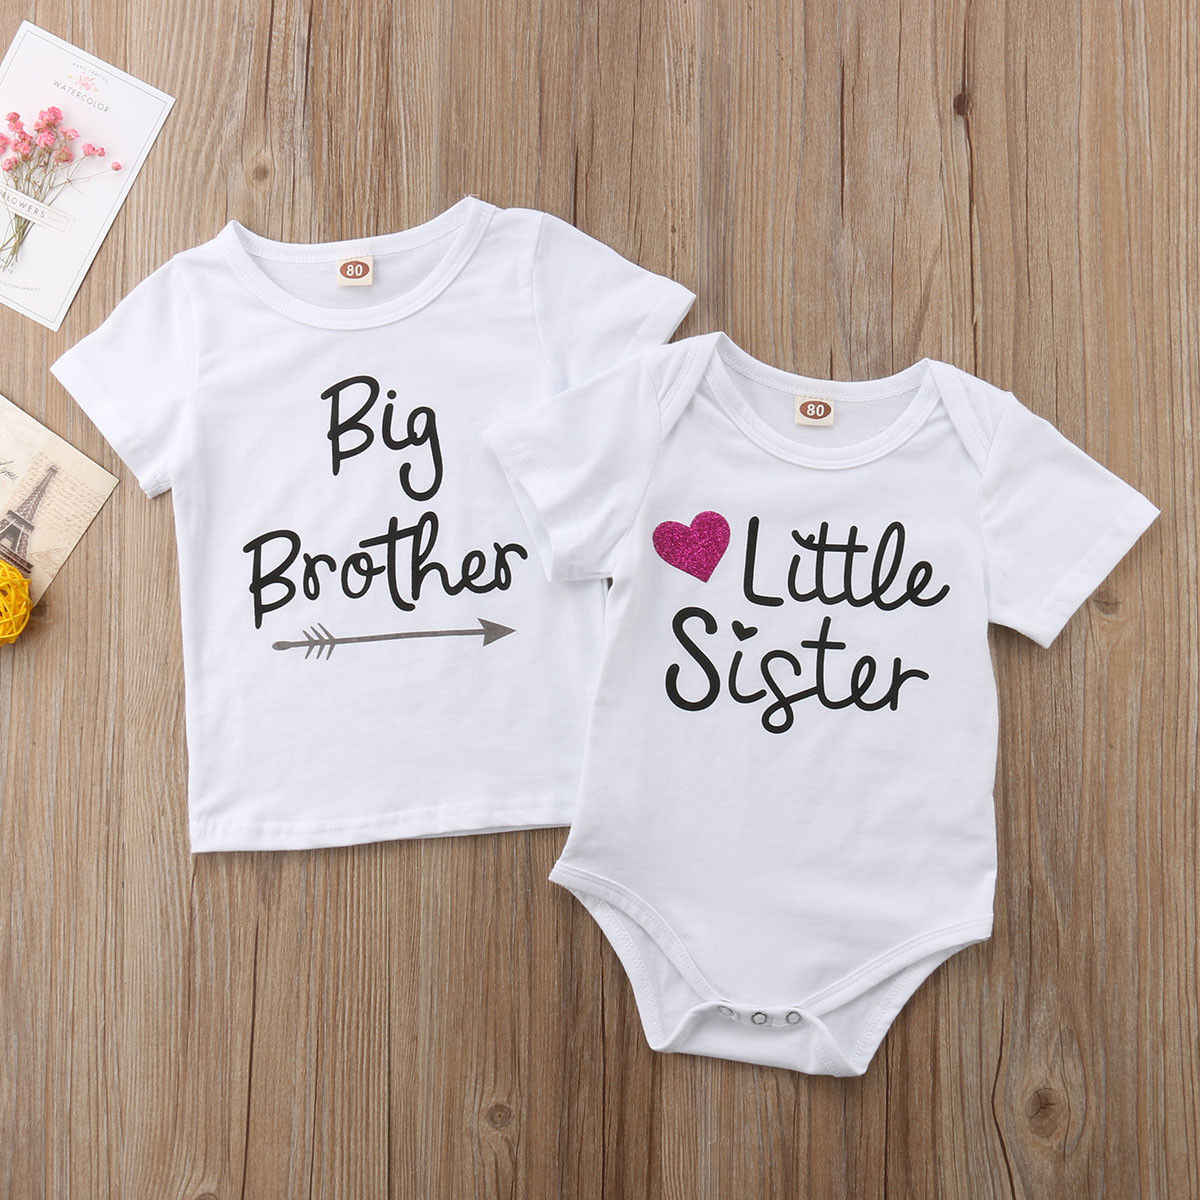 Kingte Infant Toddler Girls Big Sister T Shirts and Little Sister Romper Sister Outfits Clothes